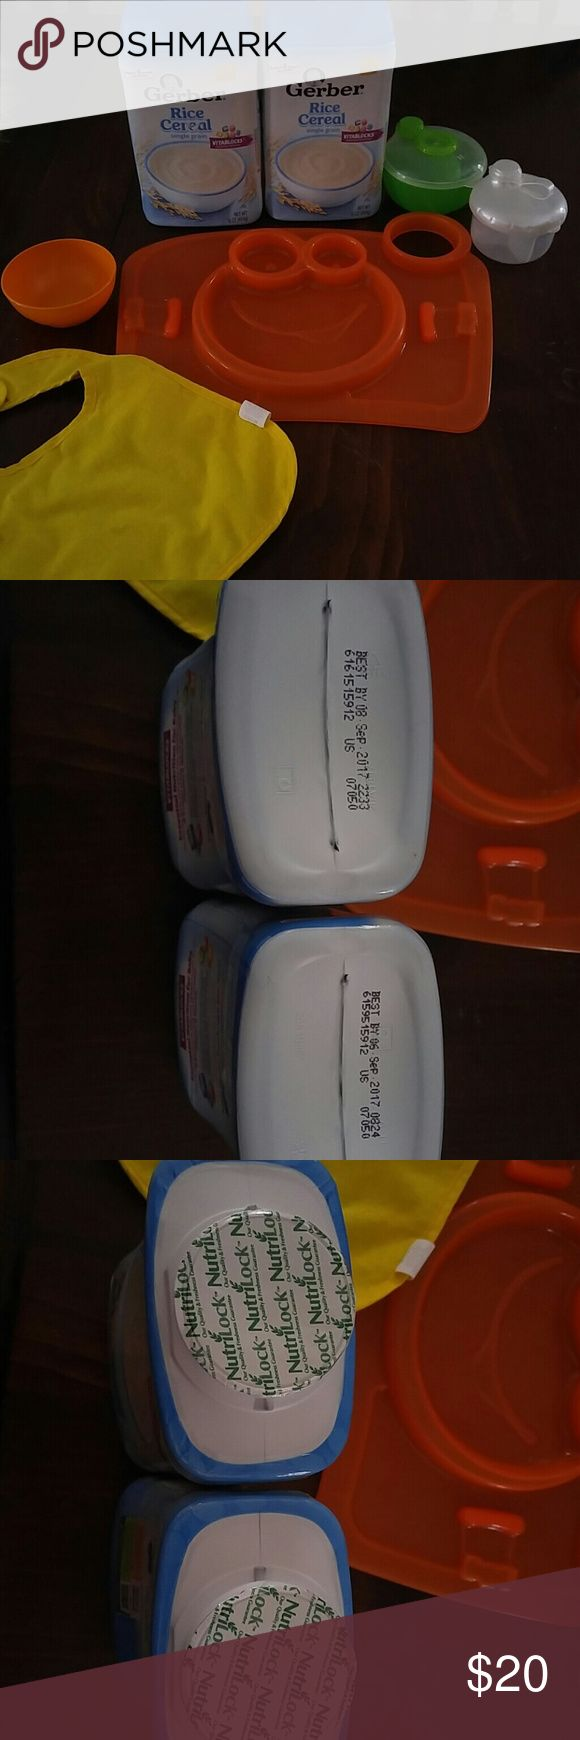 LARGE Baby food and toy bundle limited time SALE 2 in opened 16 0z rice cereal (gerber) Food tray 2 snack or formula containers  Bib And little bowl Used but good condition 2 soft blocks Little book Soft rattle Hard rattle 2 teethers  One fruit or freezer teether Car seat tangle toy And a monkey Other